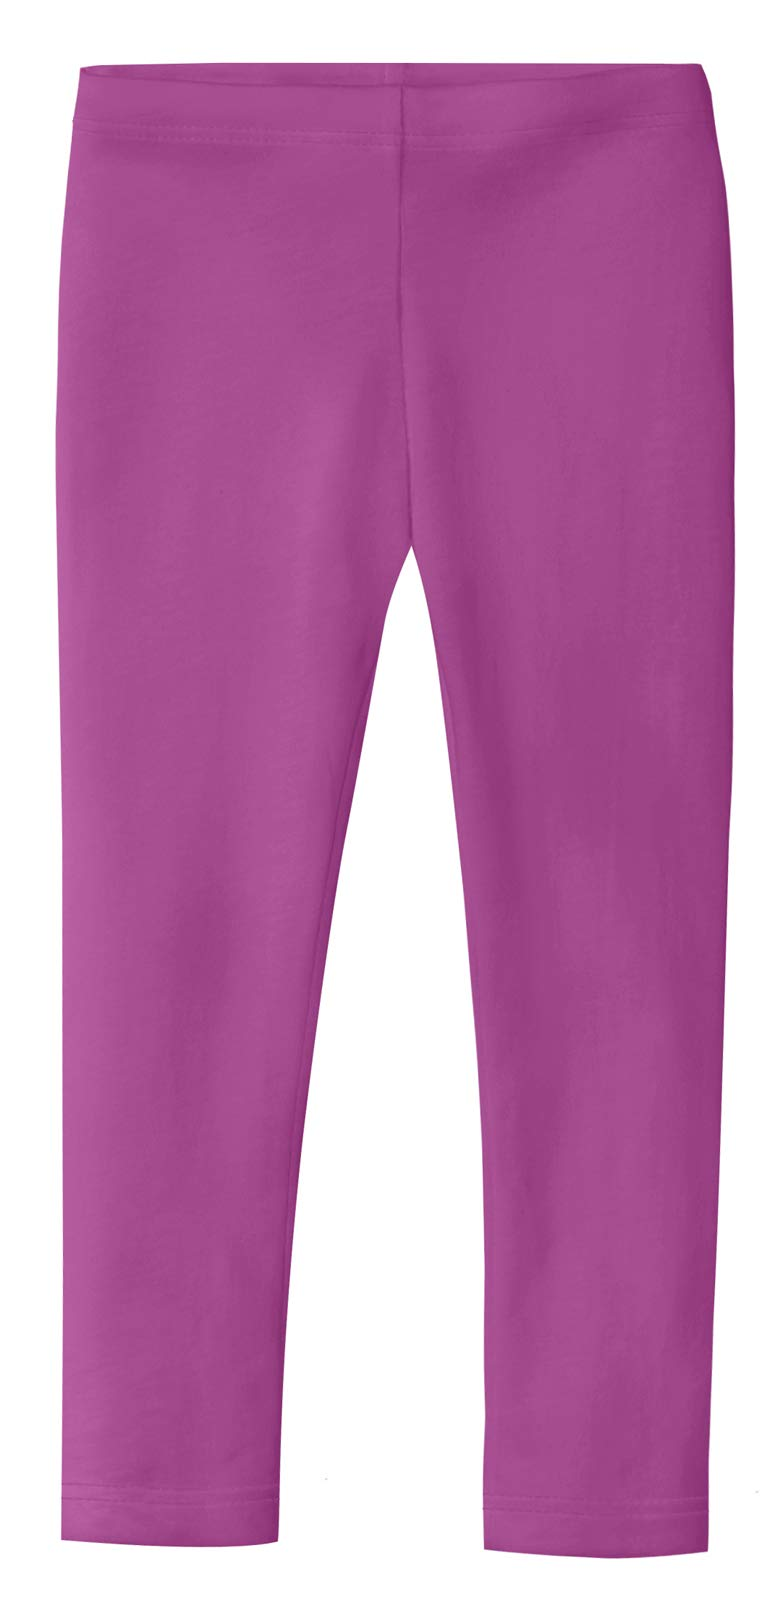 City Threads Girls' Leggings 100% Cotton for School Uniform Sports Coverage or Play Perfect for Sensitive Skin or SPD Sensory Friendly Clothing, Chocolate, 16